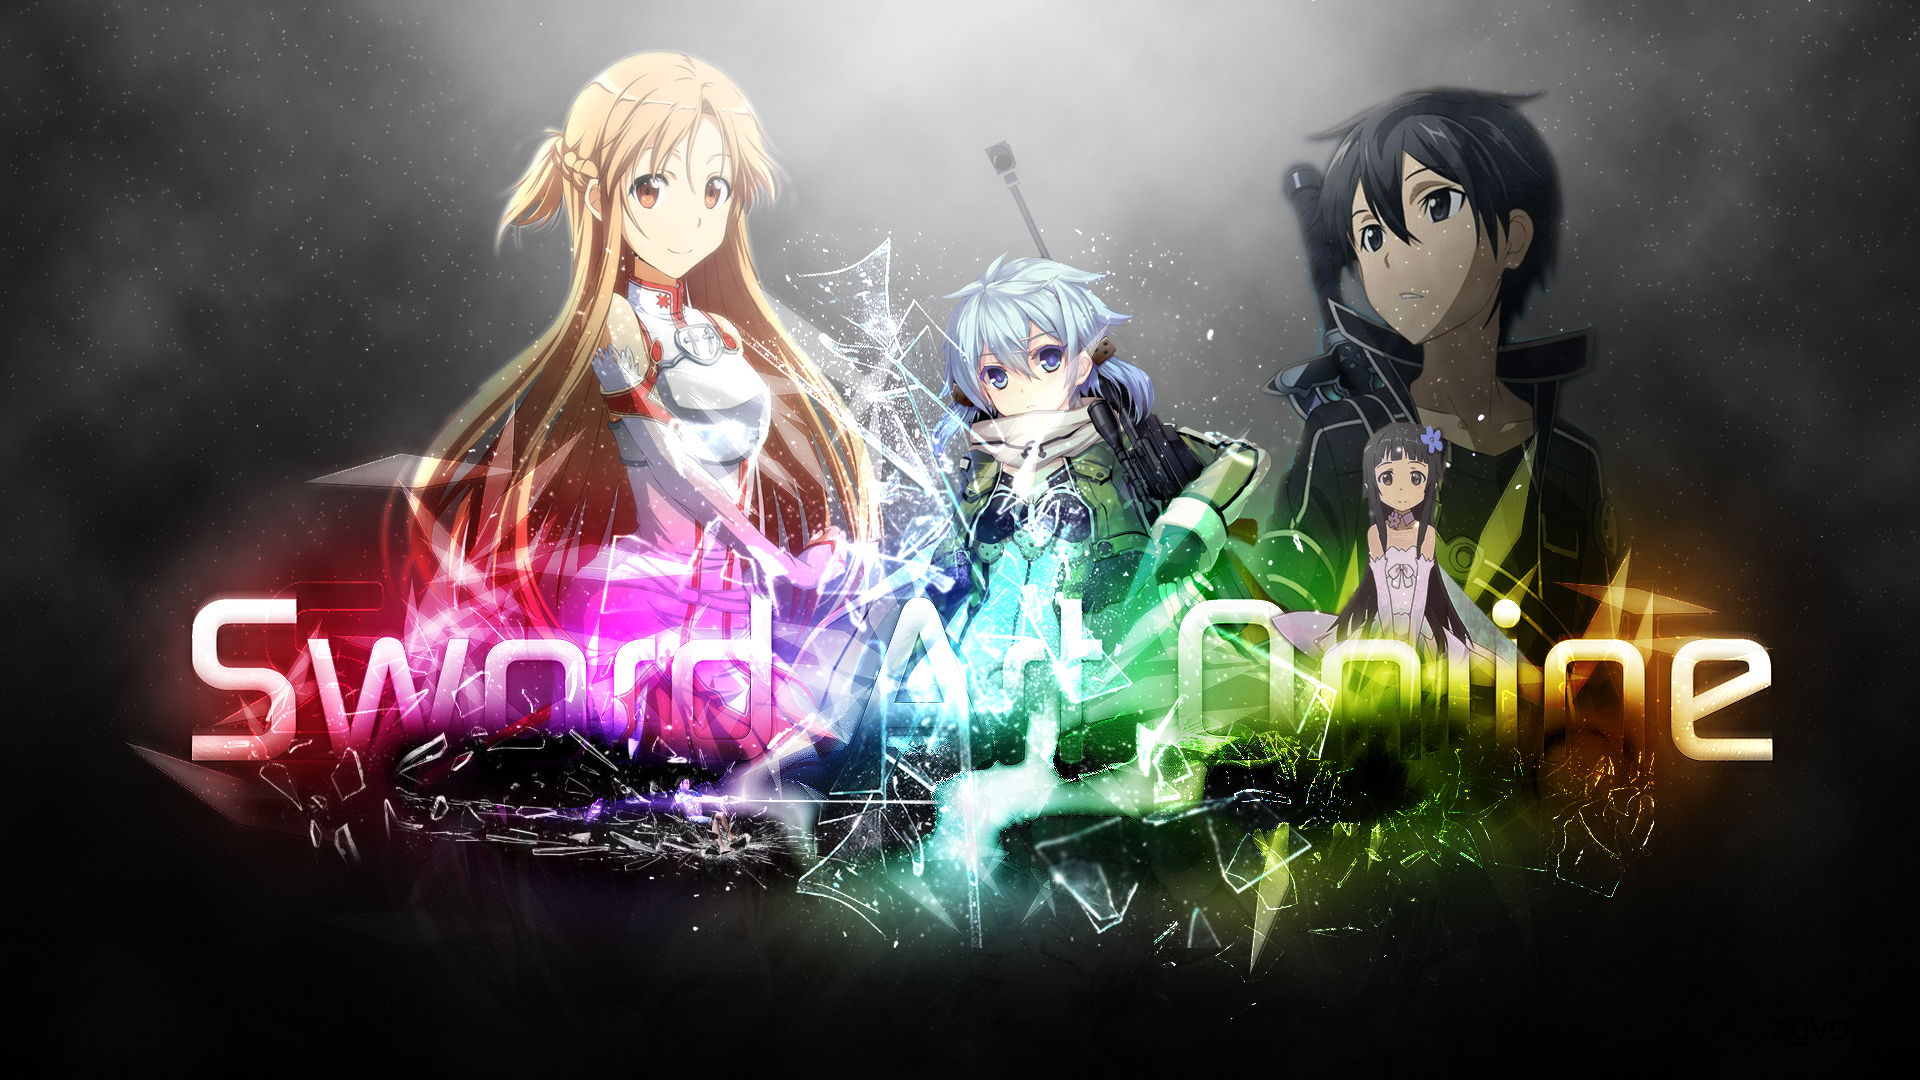 Sword Art Online Wallpaper Kirito Asuna Sinon Yui Wallpapers 1920x1080